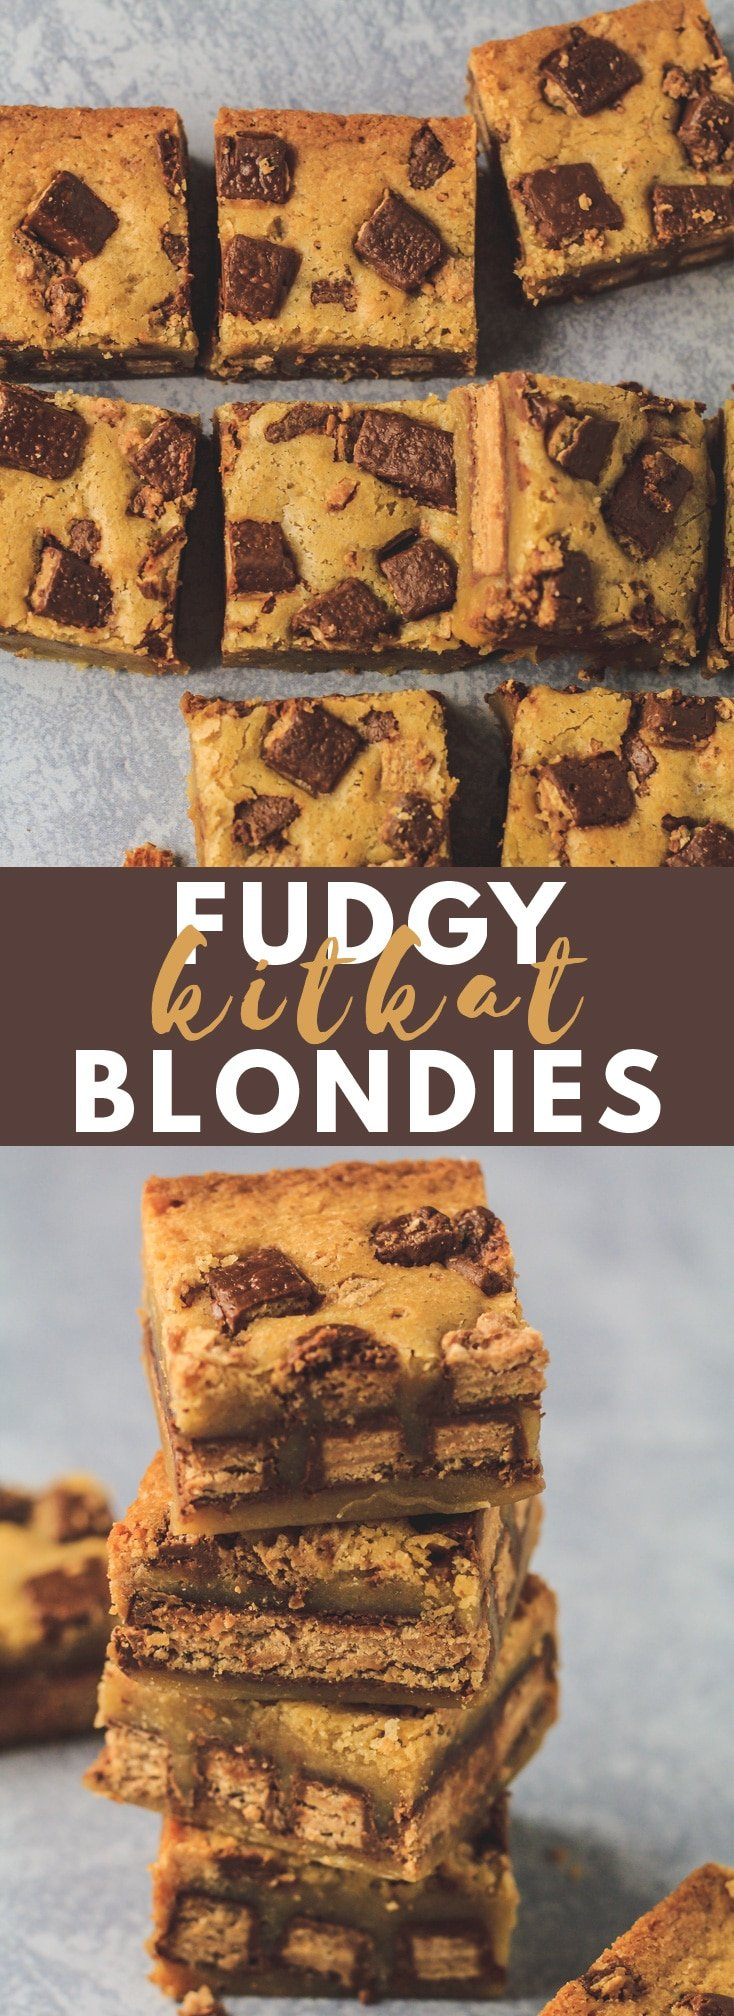 Fudgy KitKat Blondies - Deliciously thick and fudgy blondies that are stuffed with whole KitKats. The ULTIMATE blondie recipe!